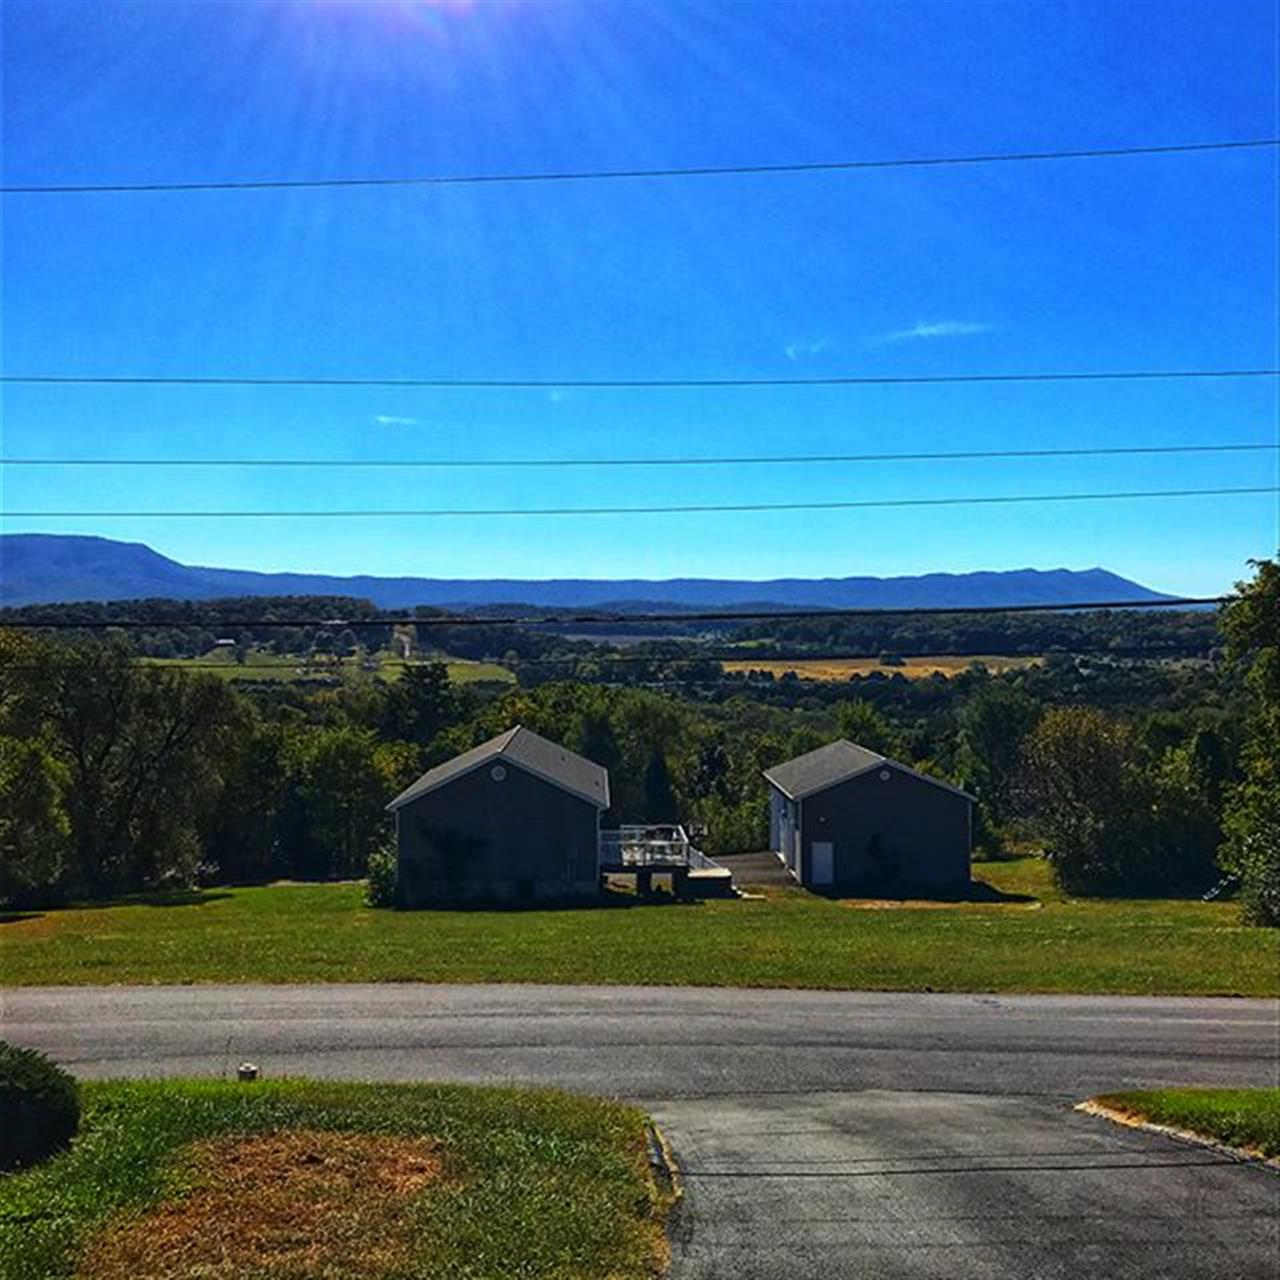 Helped an awesome family score these views today!! #sold #leadingrelocal #harrisonburg #va #welcometothevalley